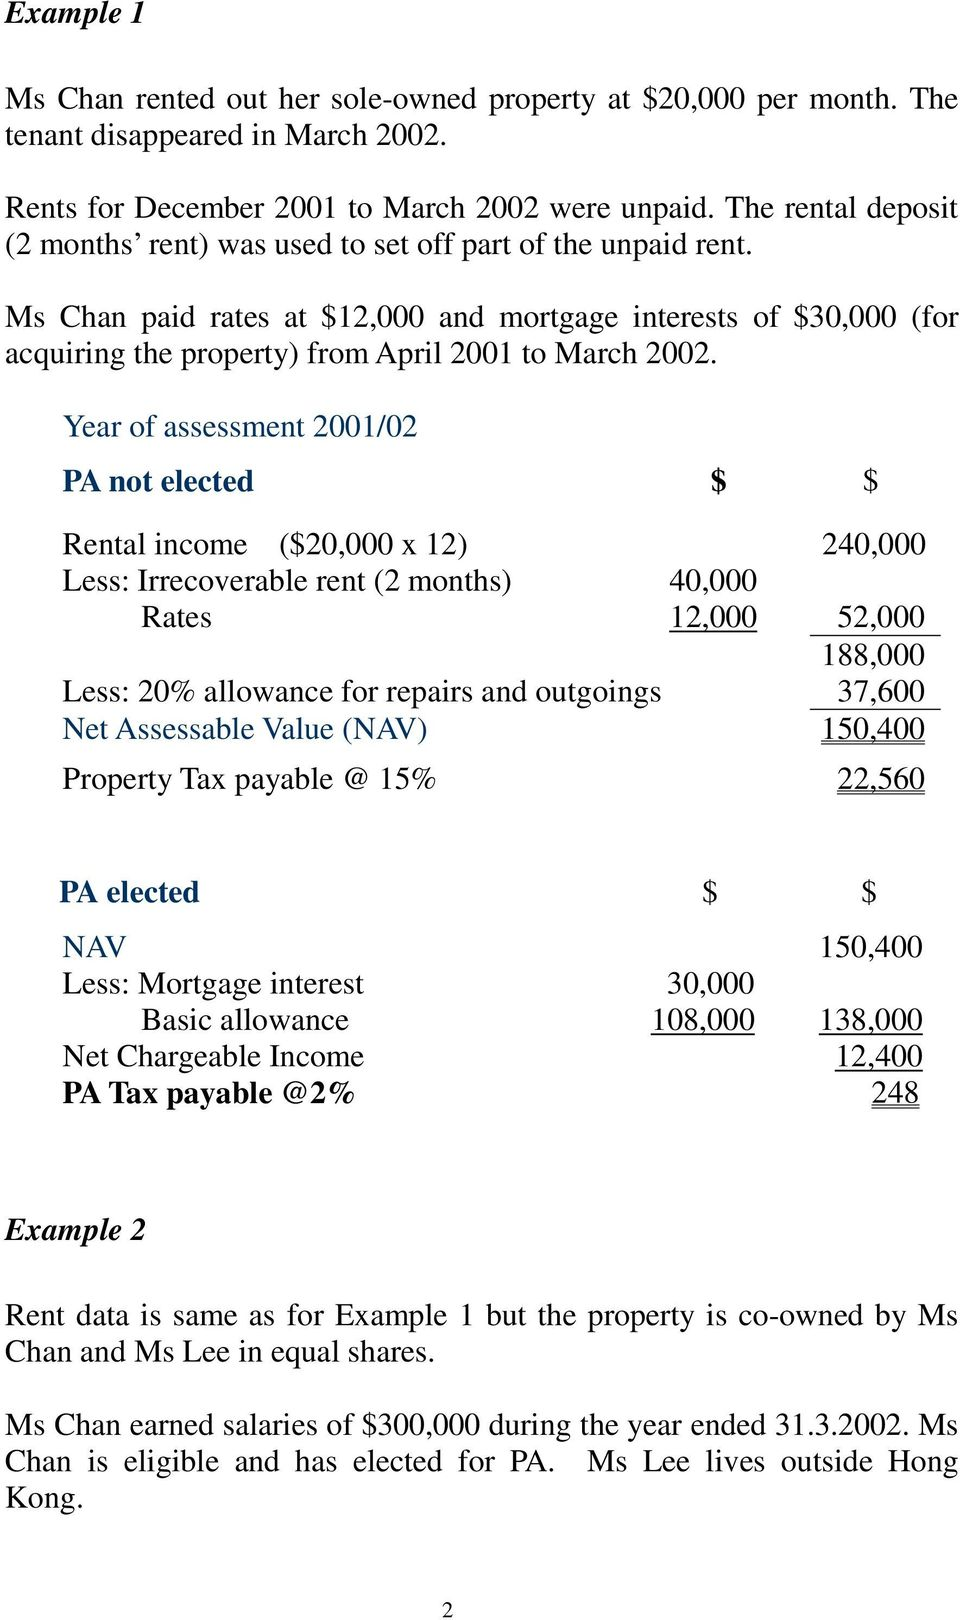 Ms Chan paid rates at $12,000 and mortgage interests of $30,000 (for acquiring the property) from April 2001 to March 2002.